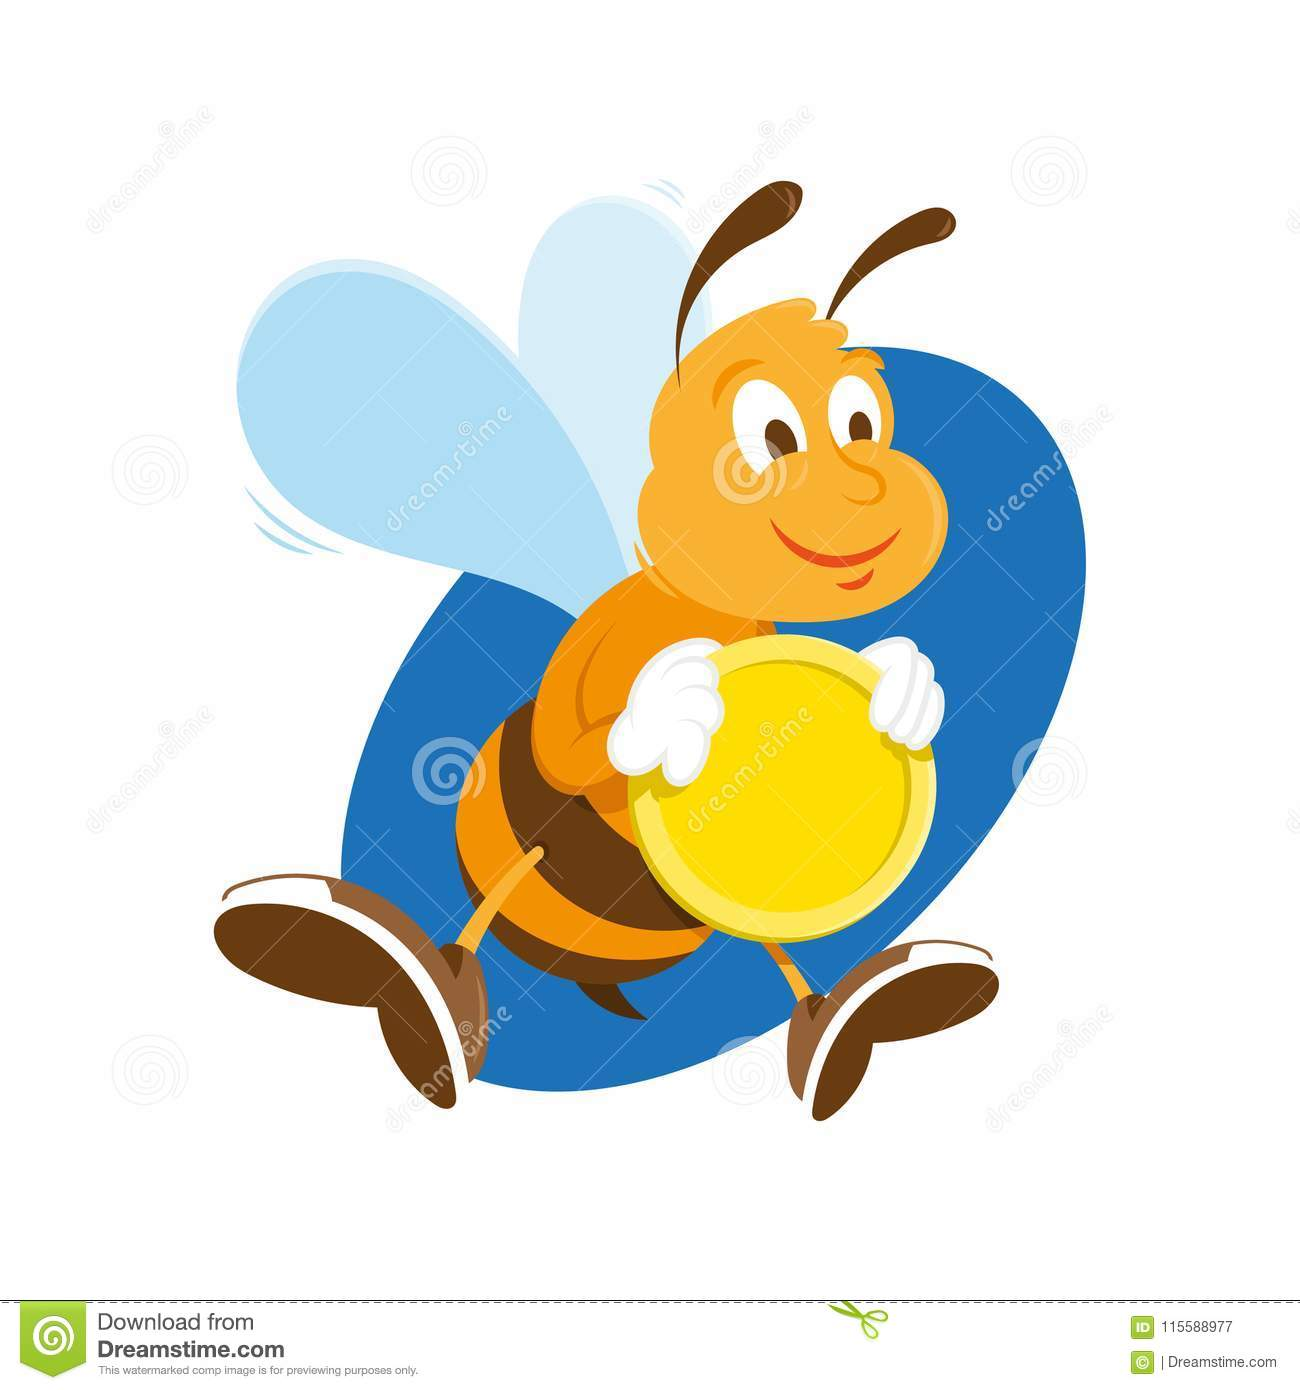 b3a3482b5144 Bee keep gold coin stock vector. Illustration of coin - 115588977